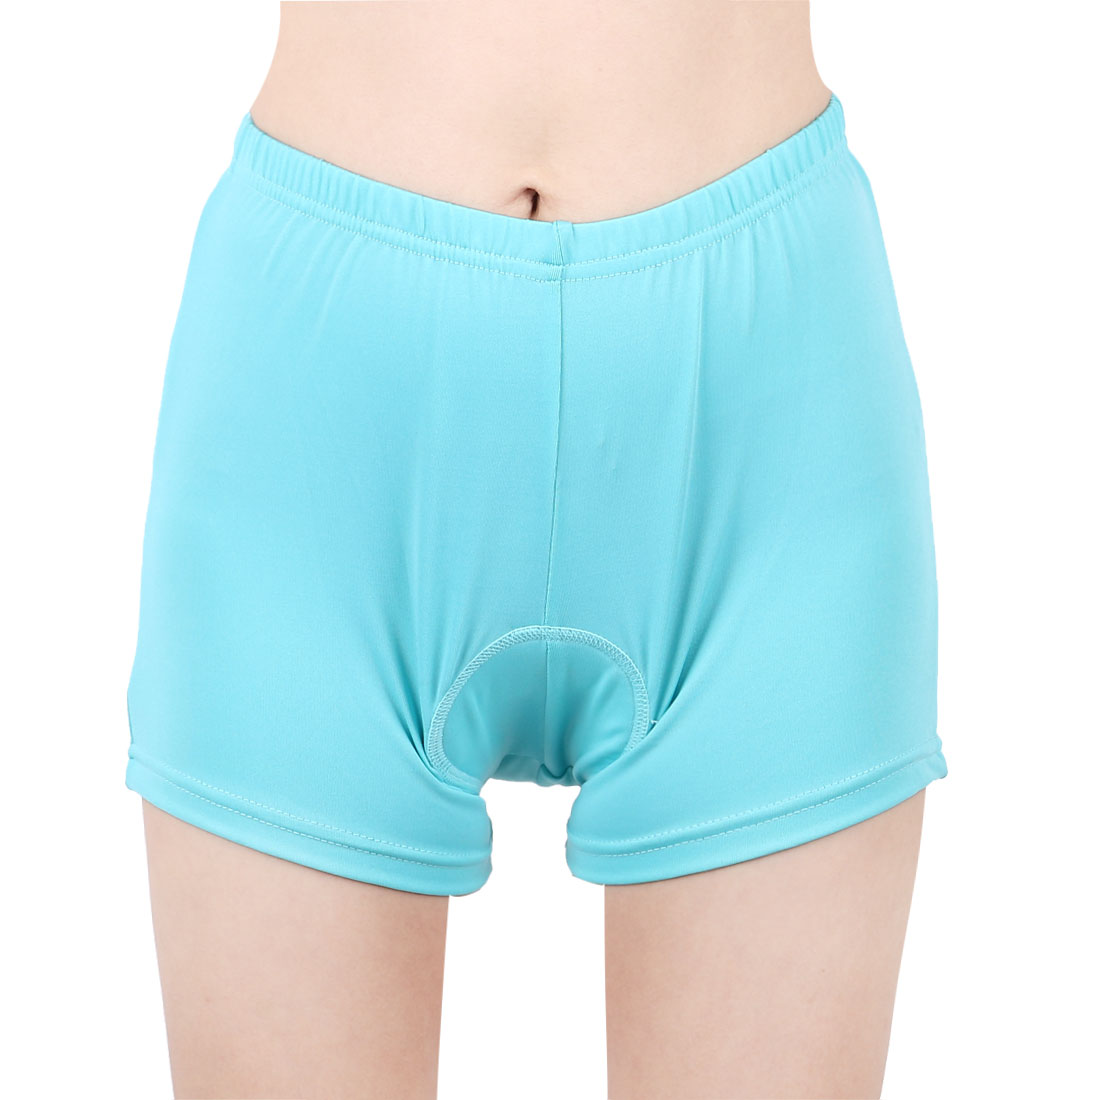 Women Bicycle Polyester Fiber Breathable 3D Padded Cycling Shorts Underwear Bike Short Blue XL/S (US 6)